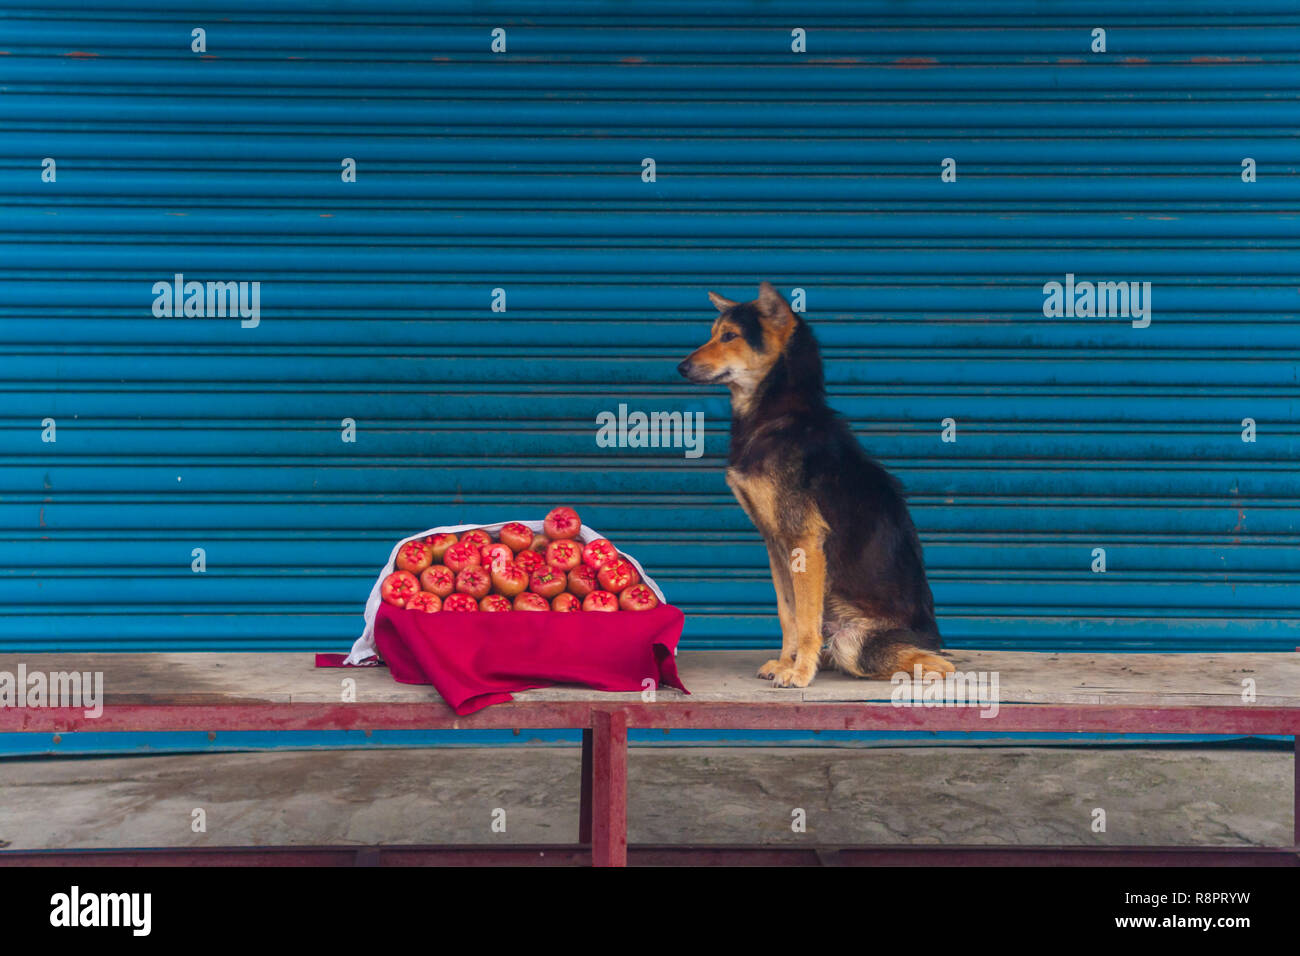 Dog And Fruit - Stock Image